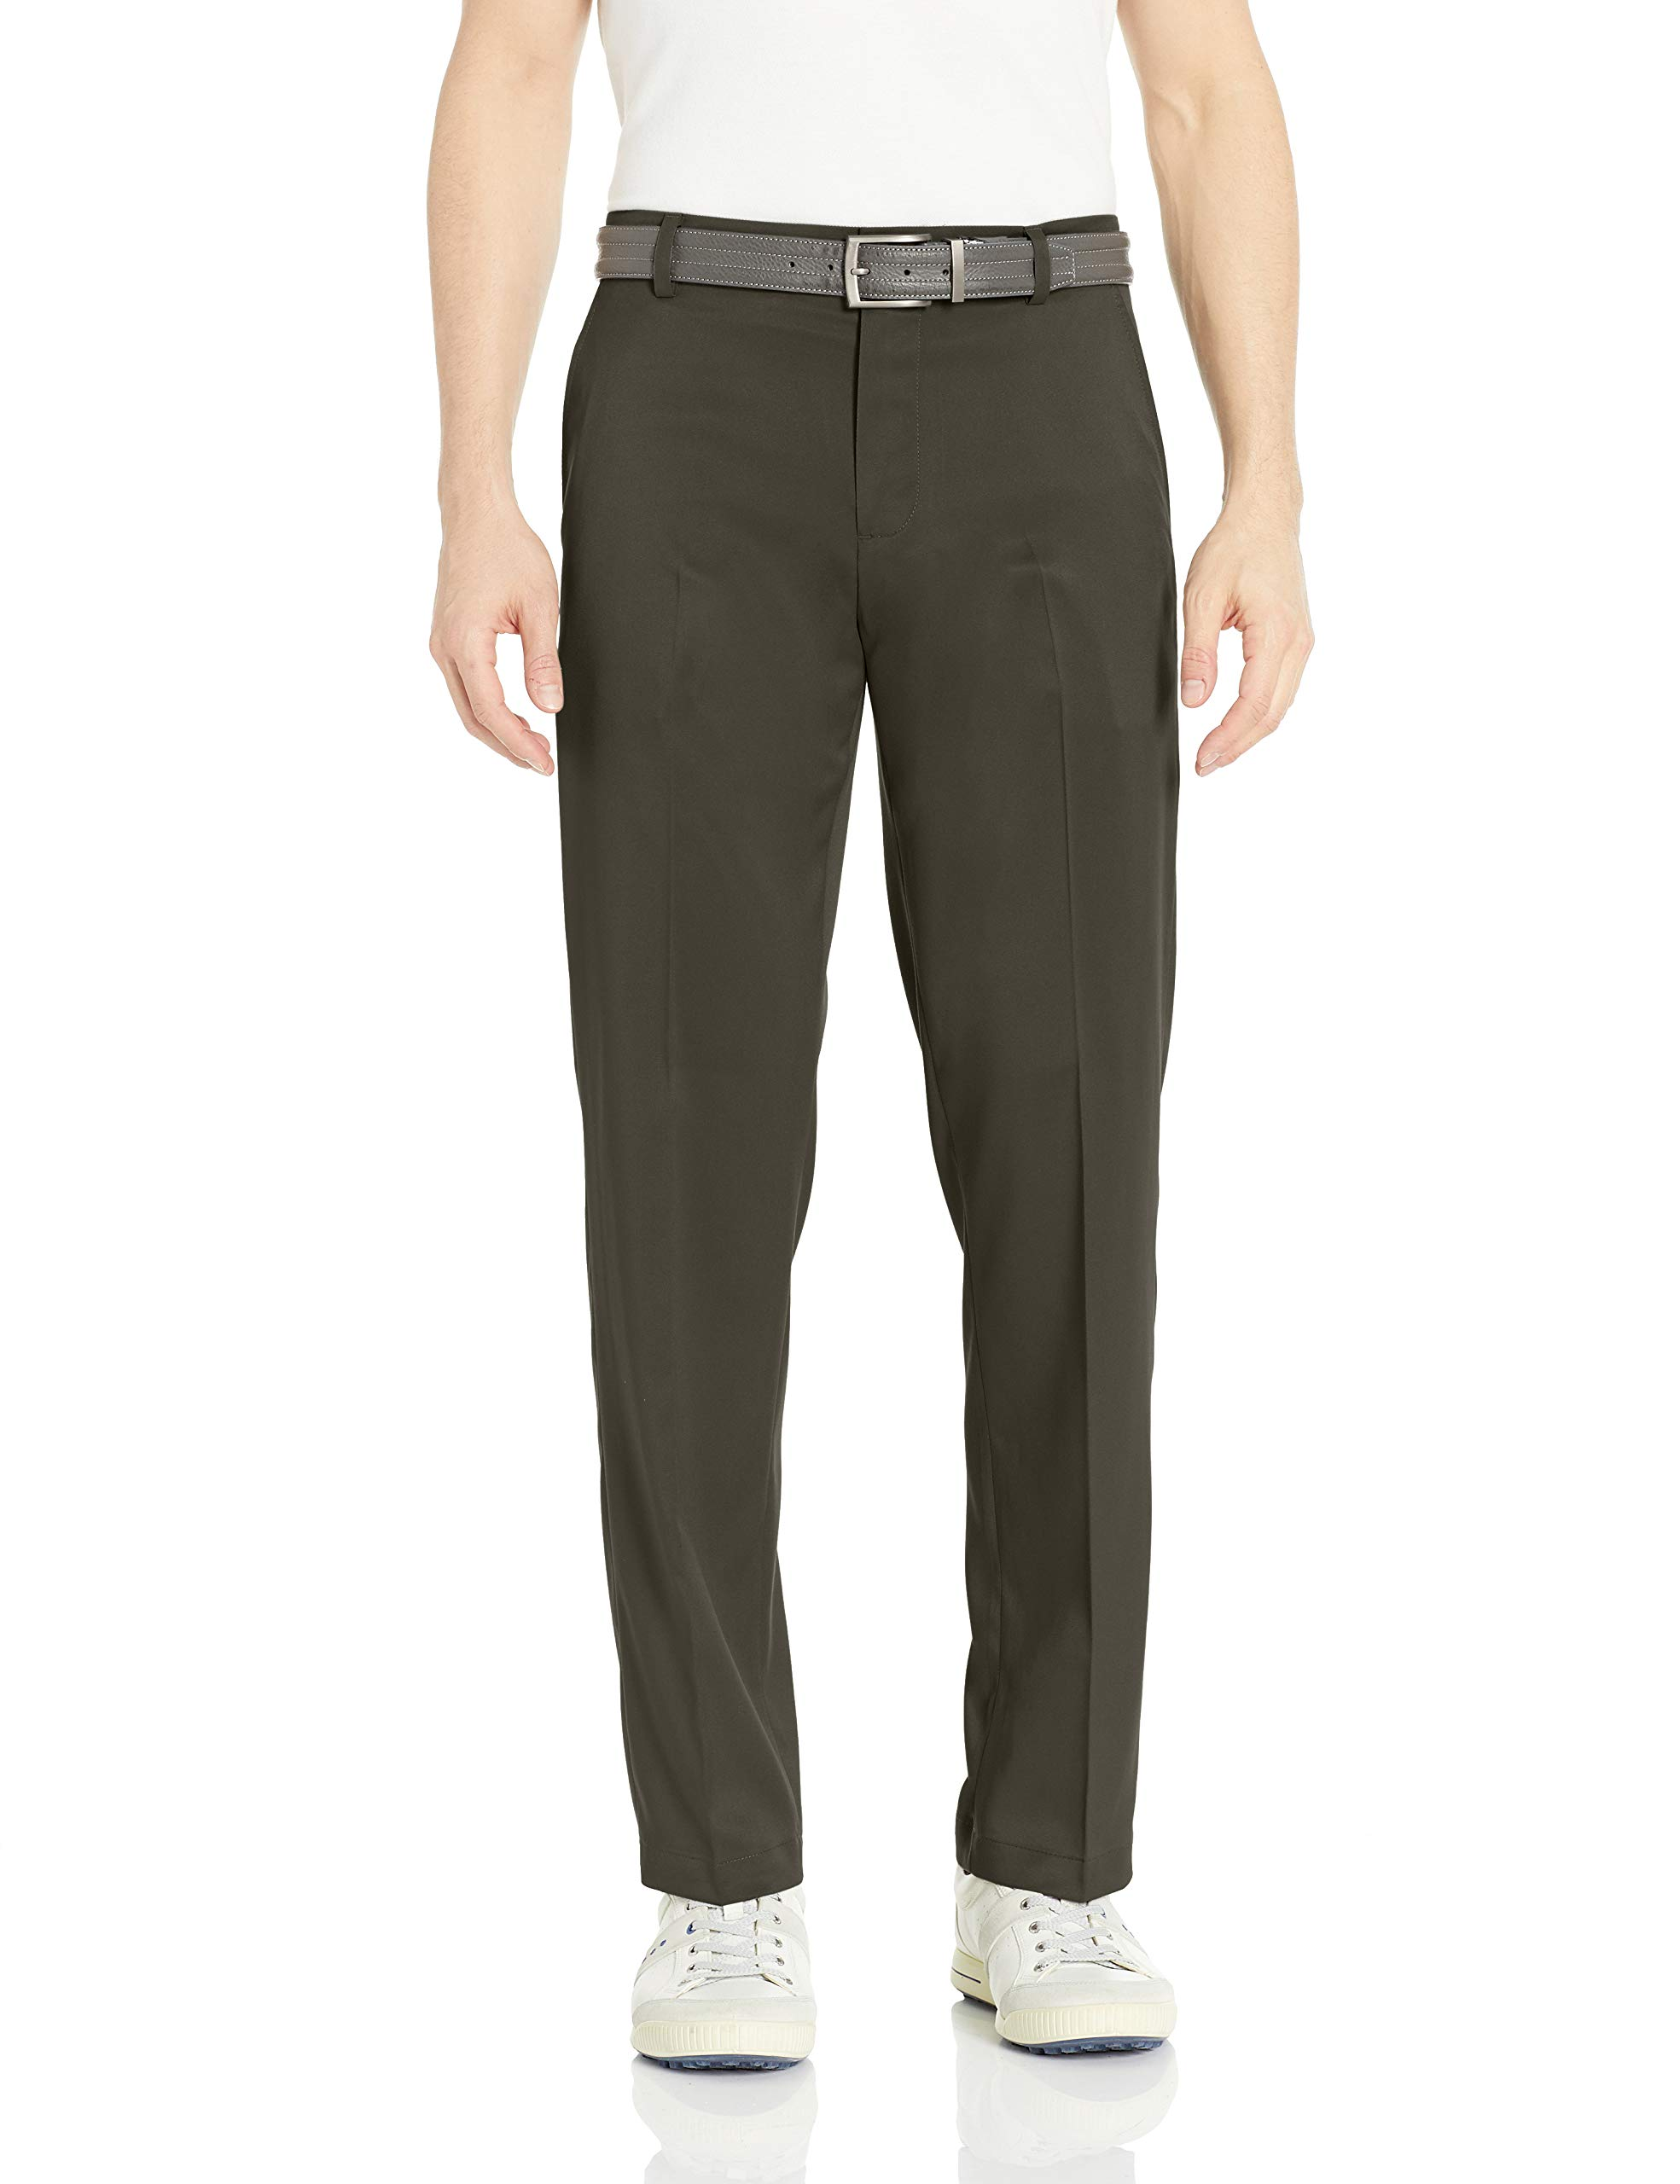 Amazon Essentials Men's Standard Classic-Fit Stretch Golf Pant, Olive, 36W x 34L by Amazon Essentials